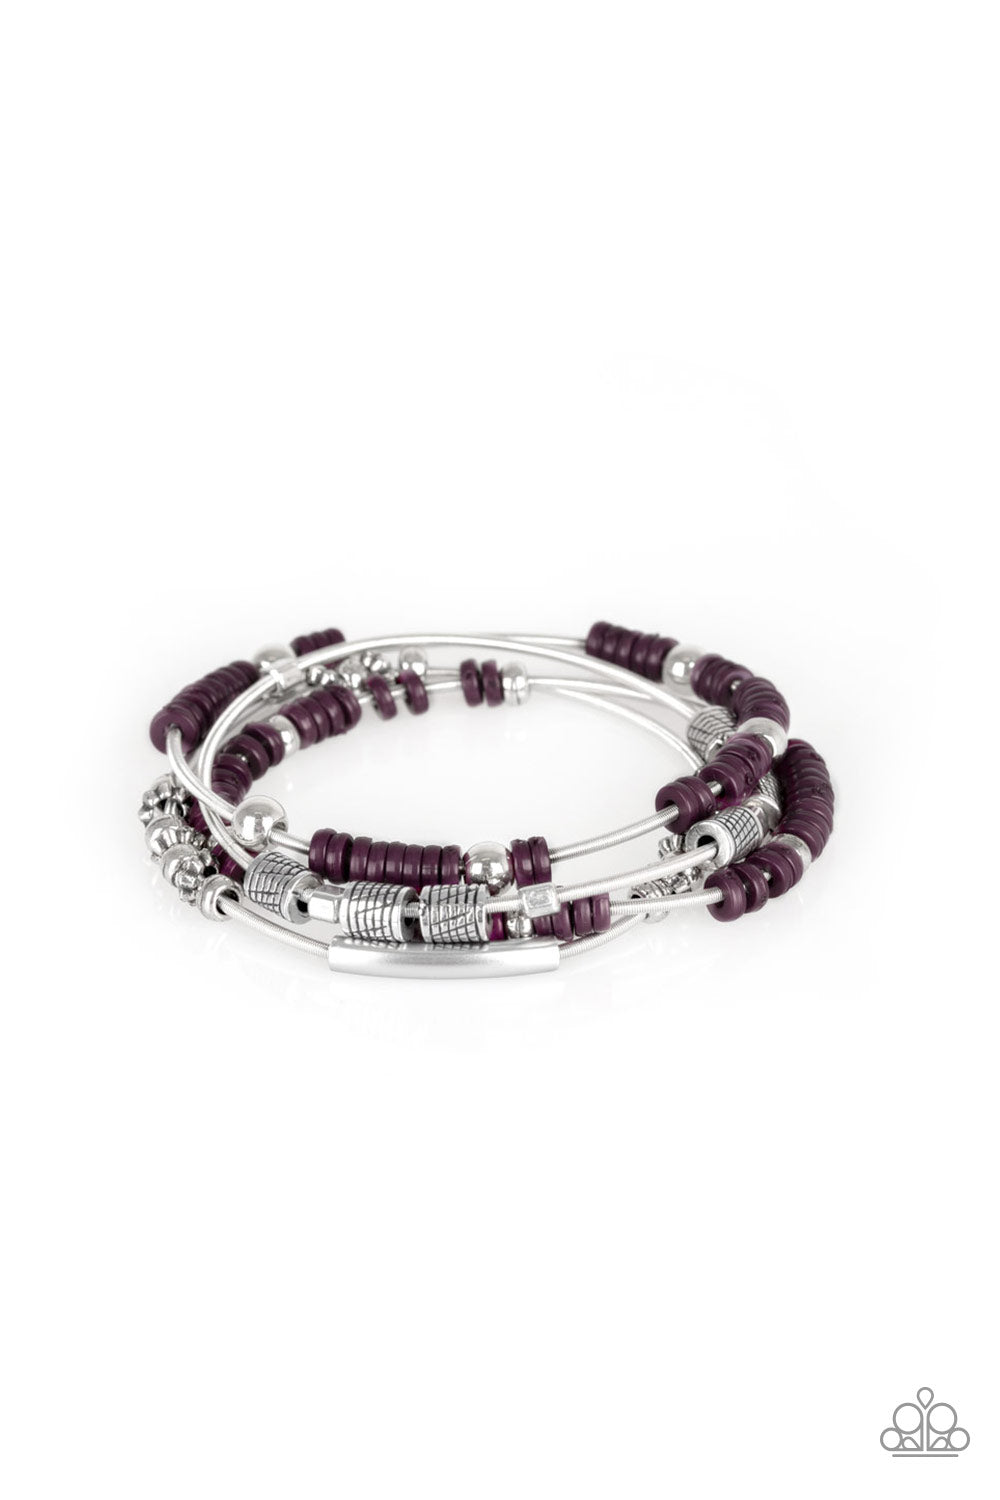 five-dollar-jewelry-tribal-spunk-purple-bracelet-paparazzi-accessories